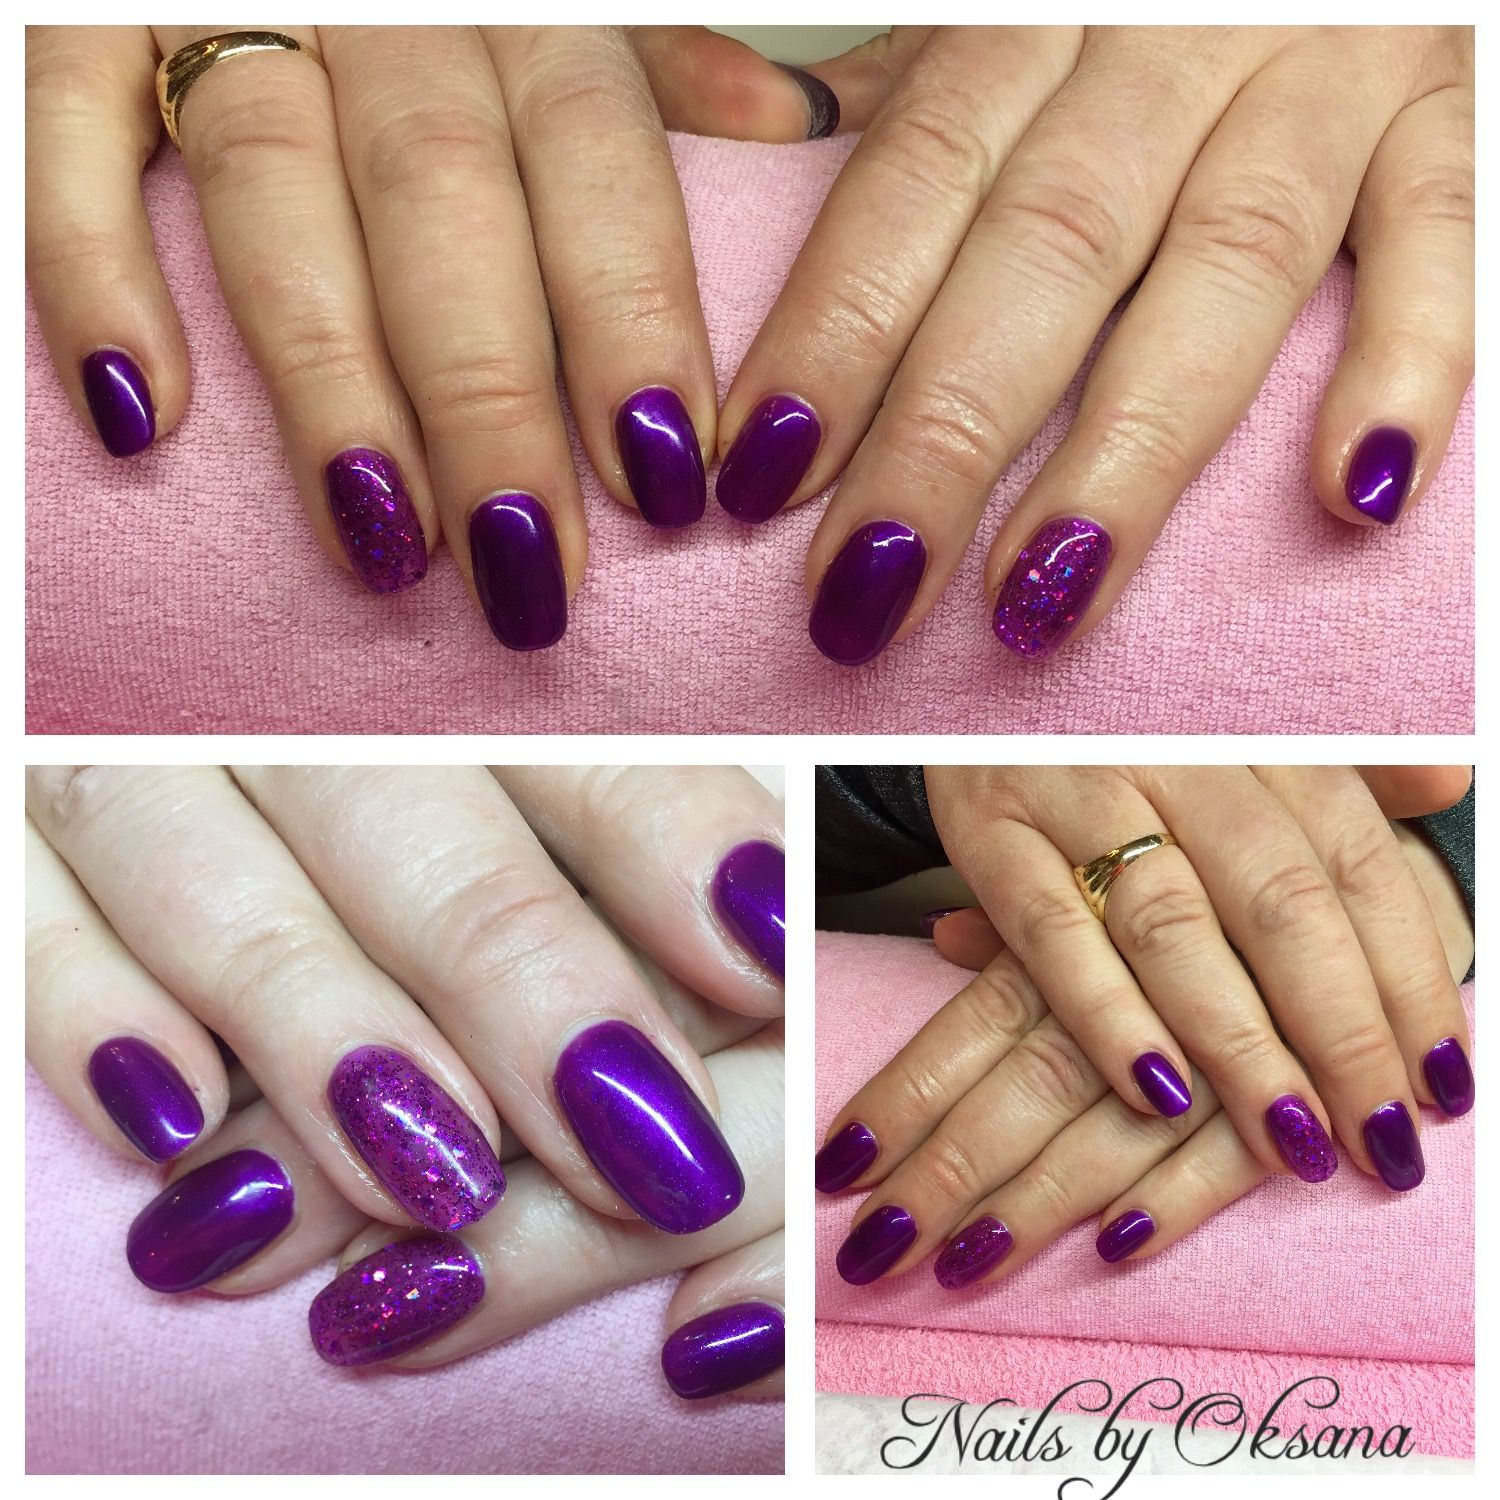 Gel Nails Extensions On Forms Very Short